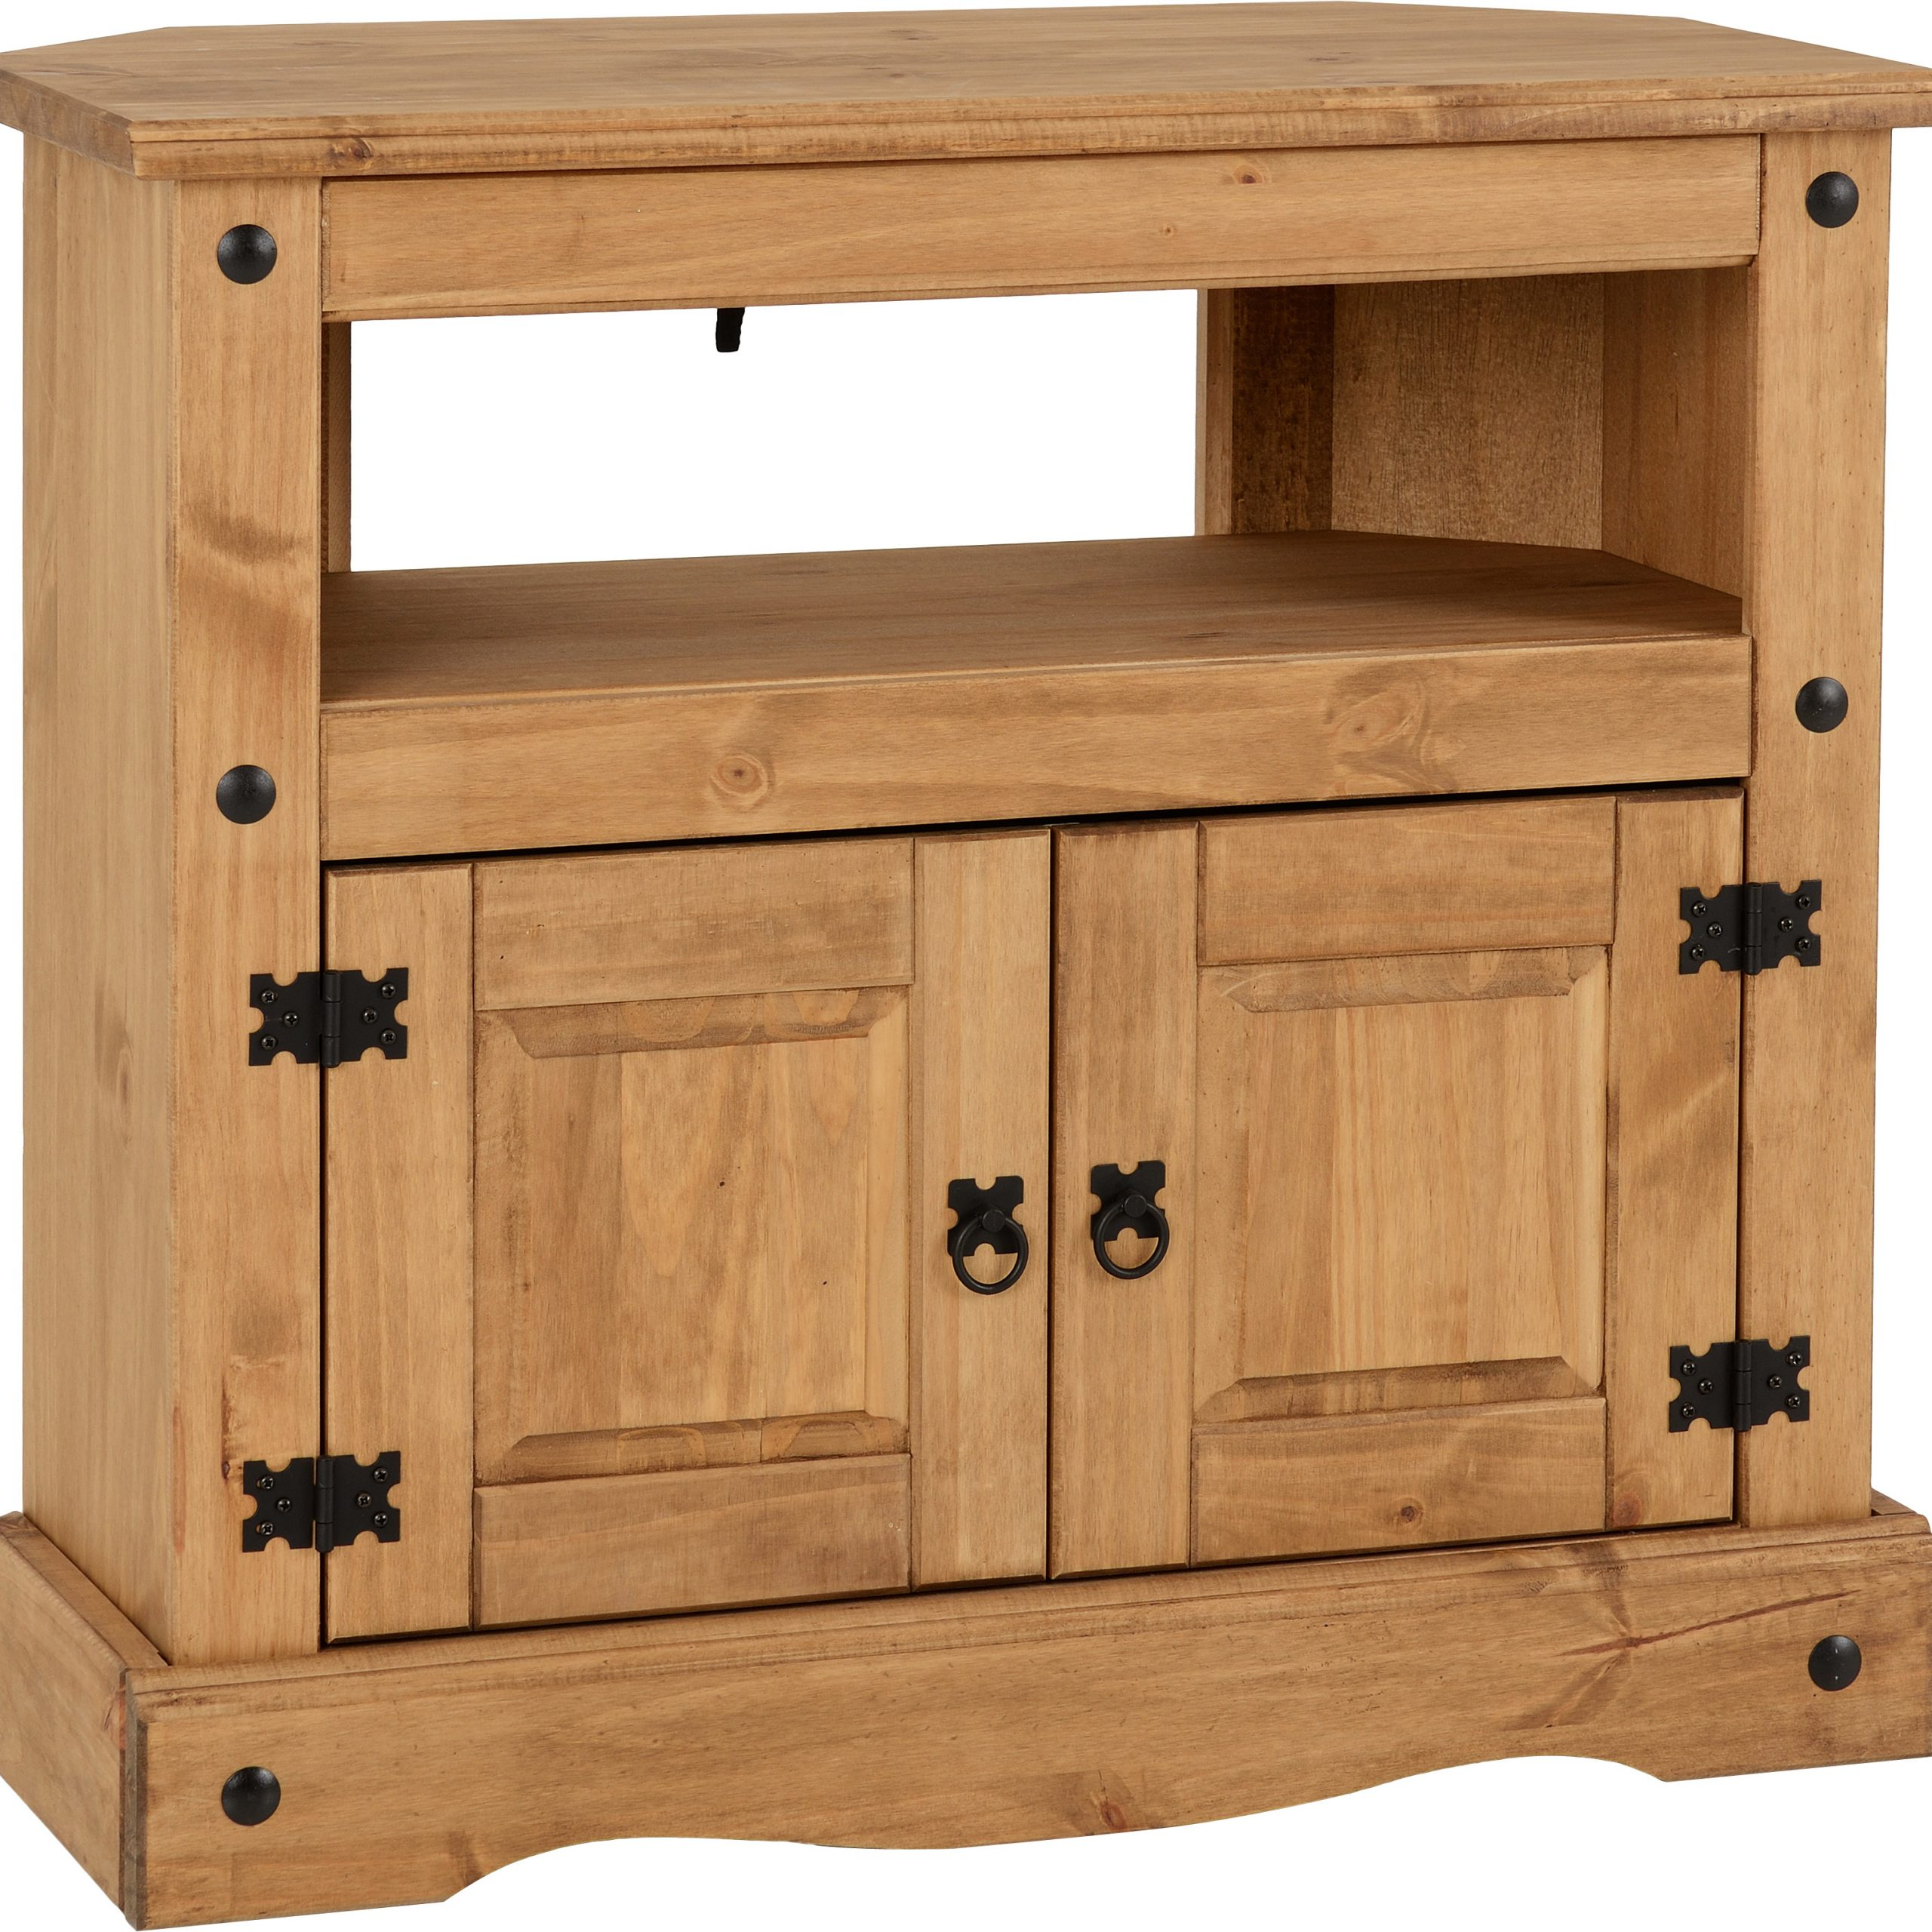 Wholesale Beds And Furniture With Regard To Corona Pine 2 Door 1 Shelf Flat Screen Tv Unit Stands (View 1 of 15)